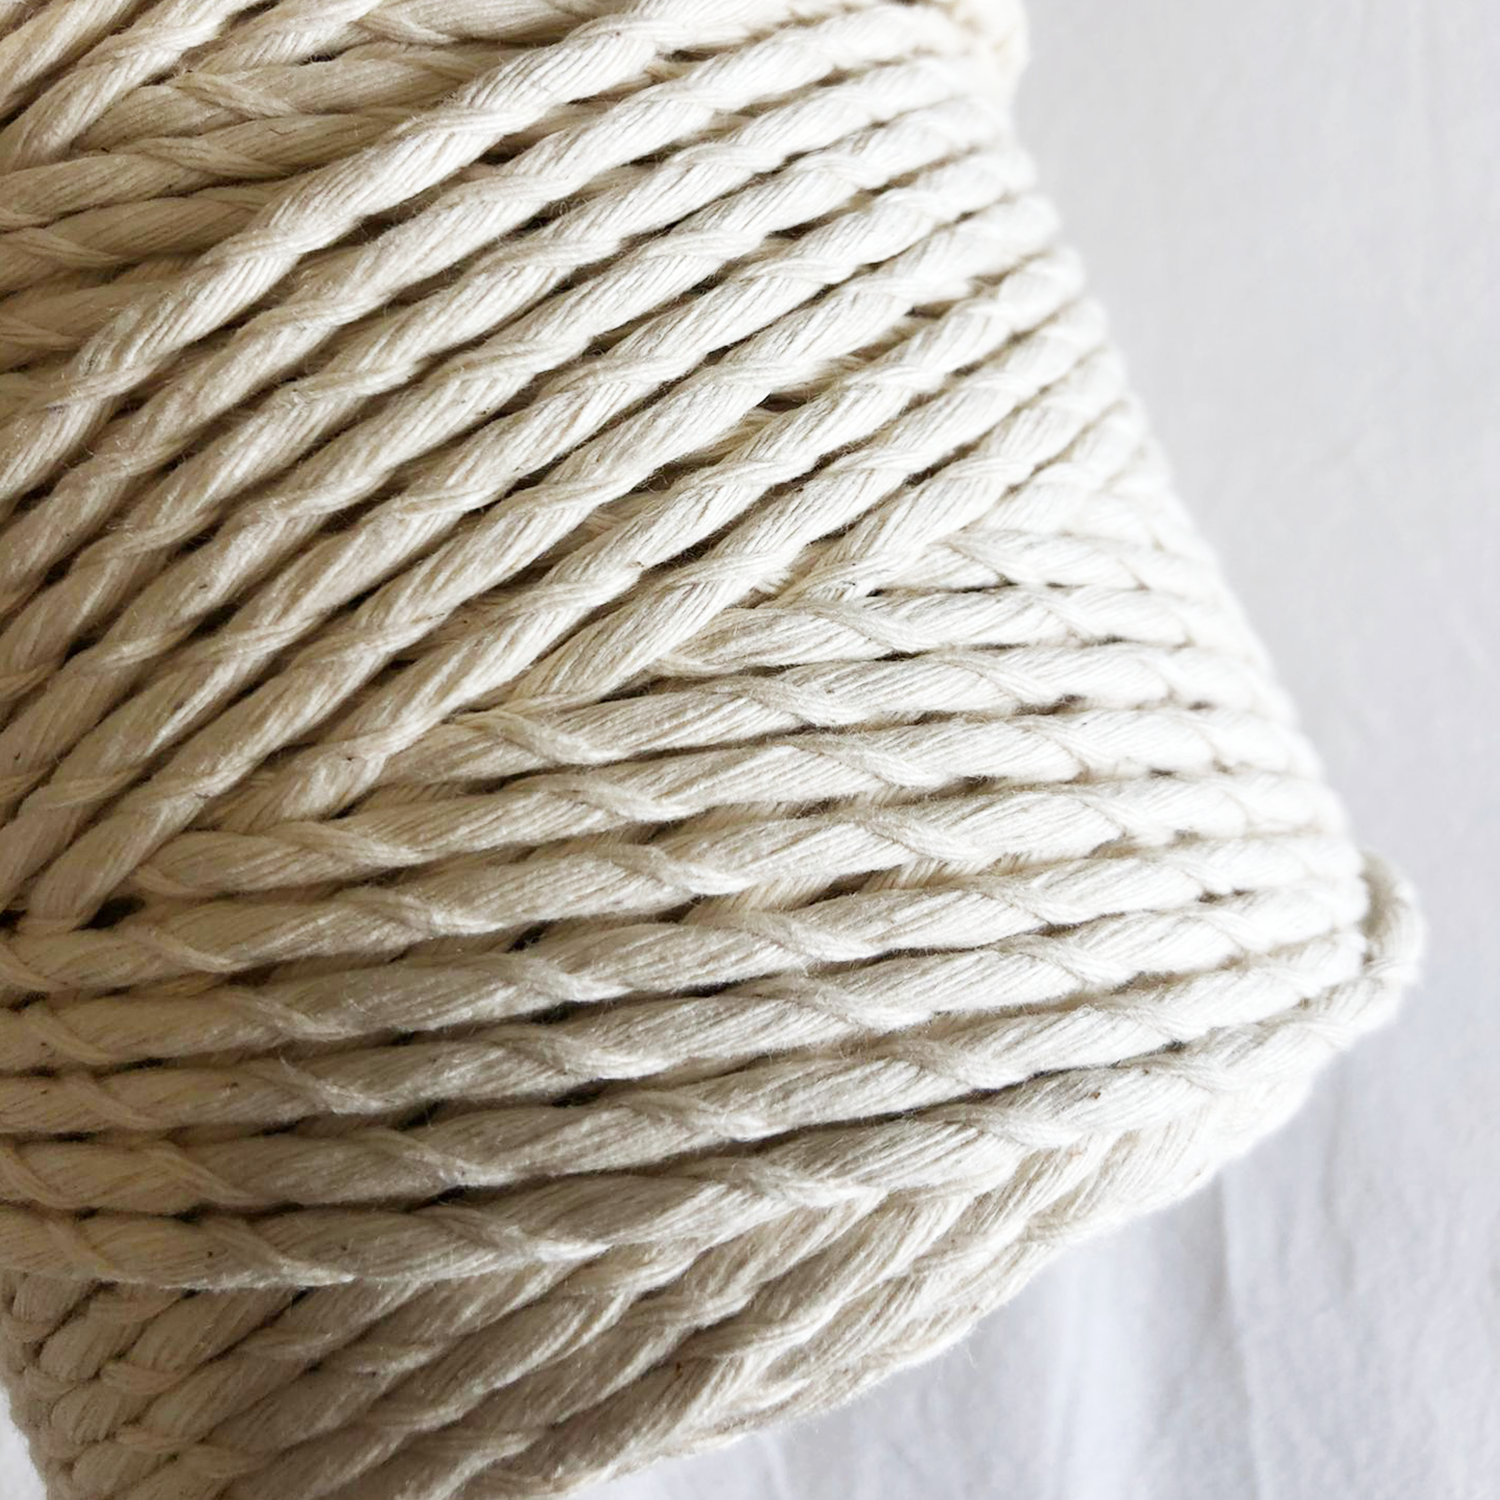 Macramé Cotton Wavy Rope | 6 mm